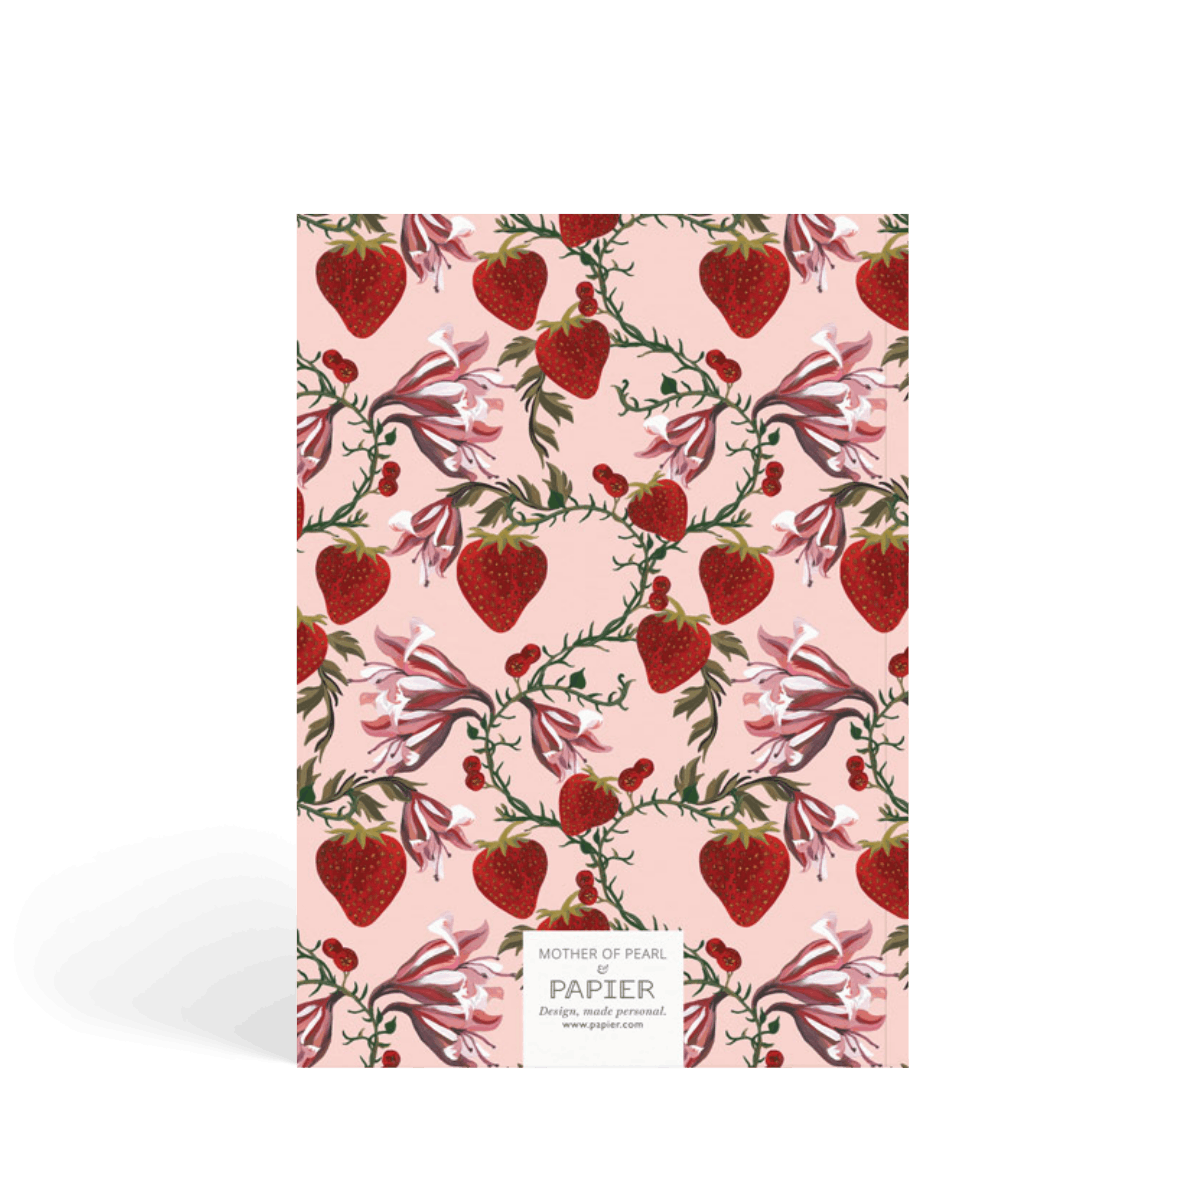 Https%3a%2f%2fwww.papier.com%2fproduct image%2f45390%2f5%2fstrawberry floral 11253 arriere 1535028391.png?ixlib=rb 1.1